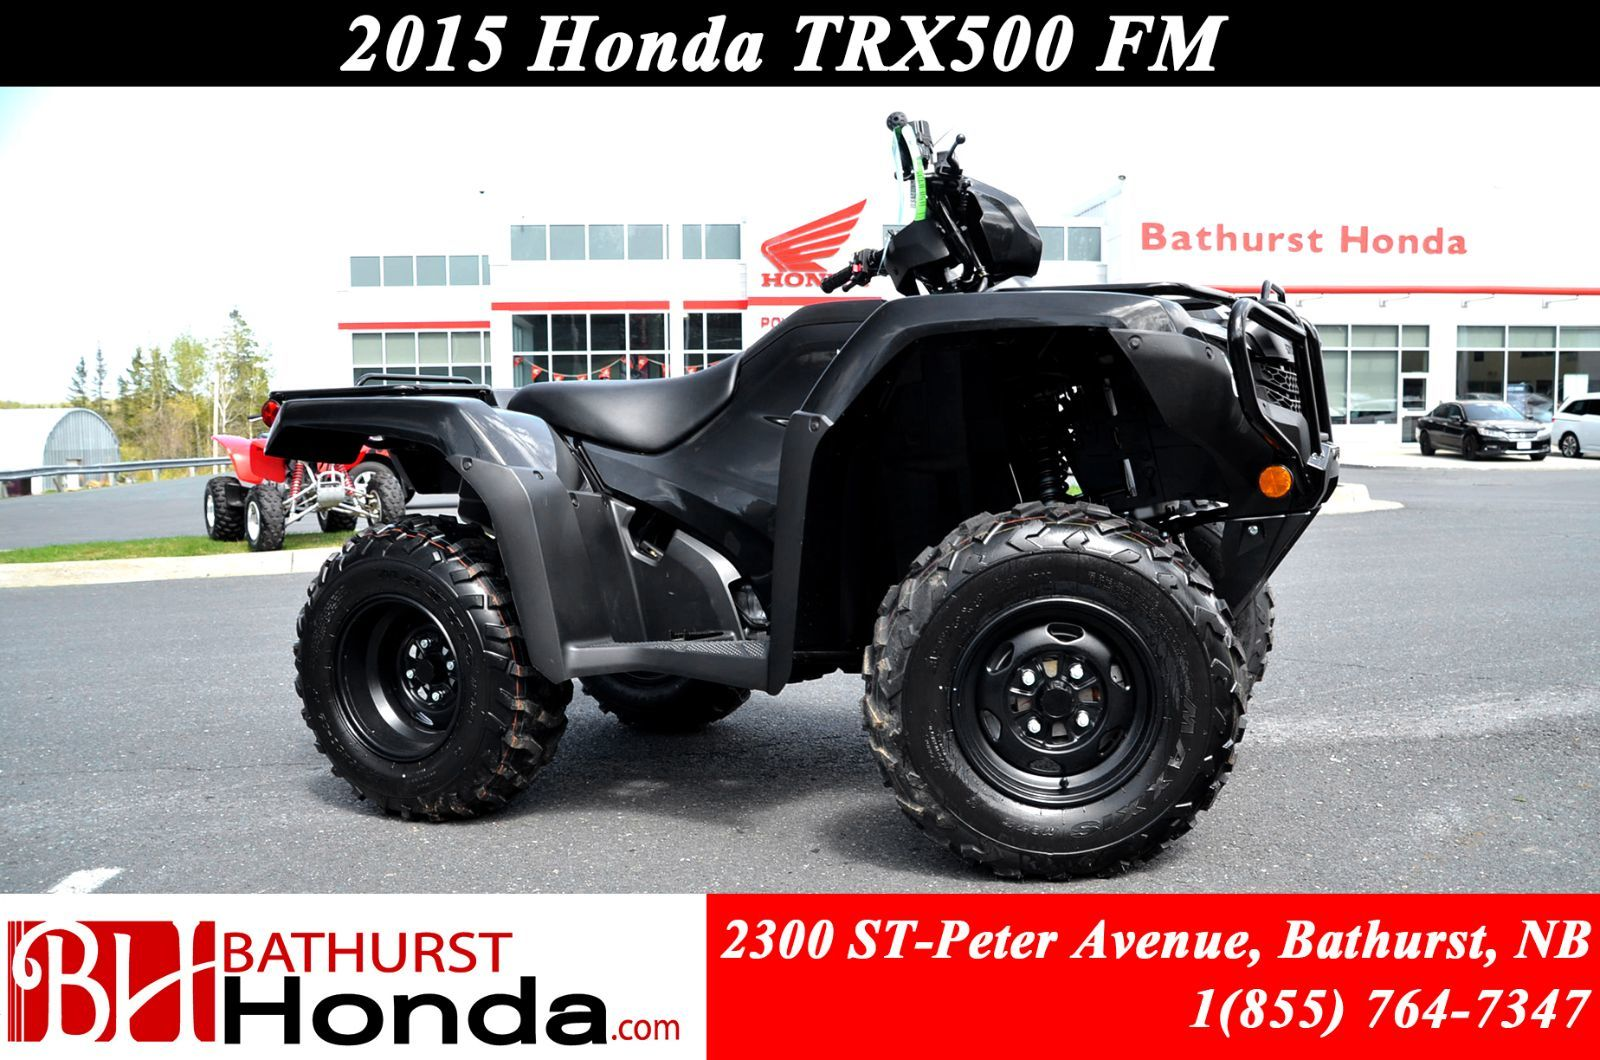 New 2015 Honda TRX500FM Foreman Four Wheel Drive! Manual Transmission with  Auto Clutch! for sale in Bathurst - Bathurst Honda in Bathurst, New  Brunswick